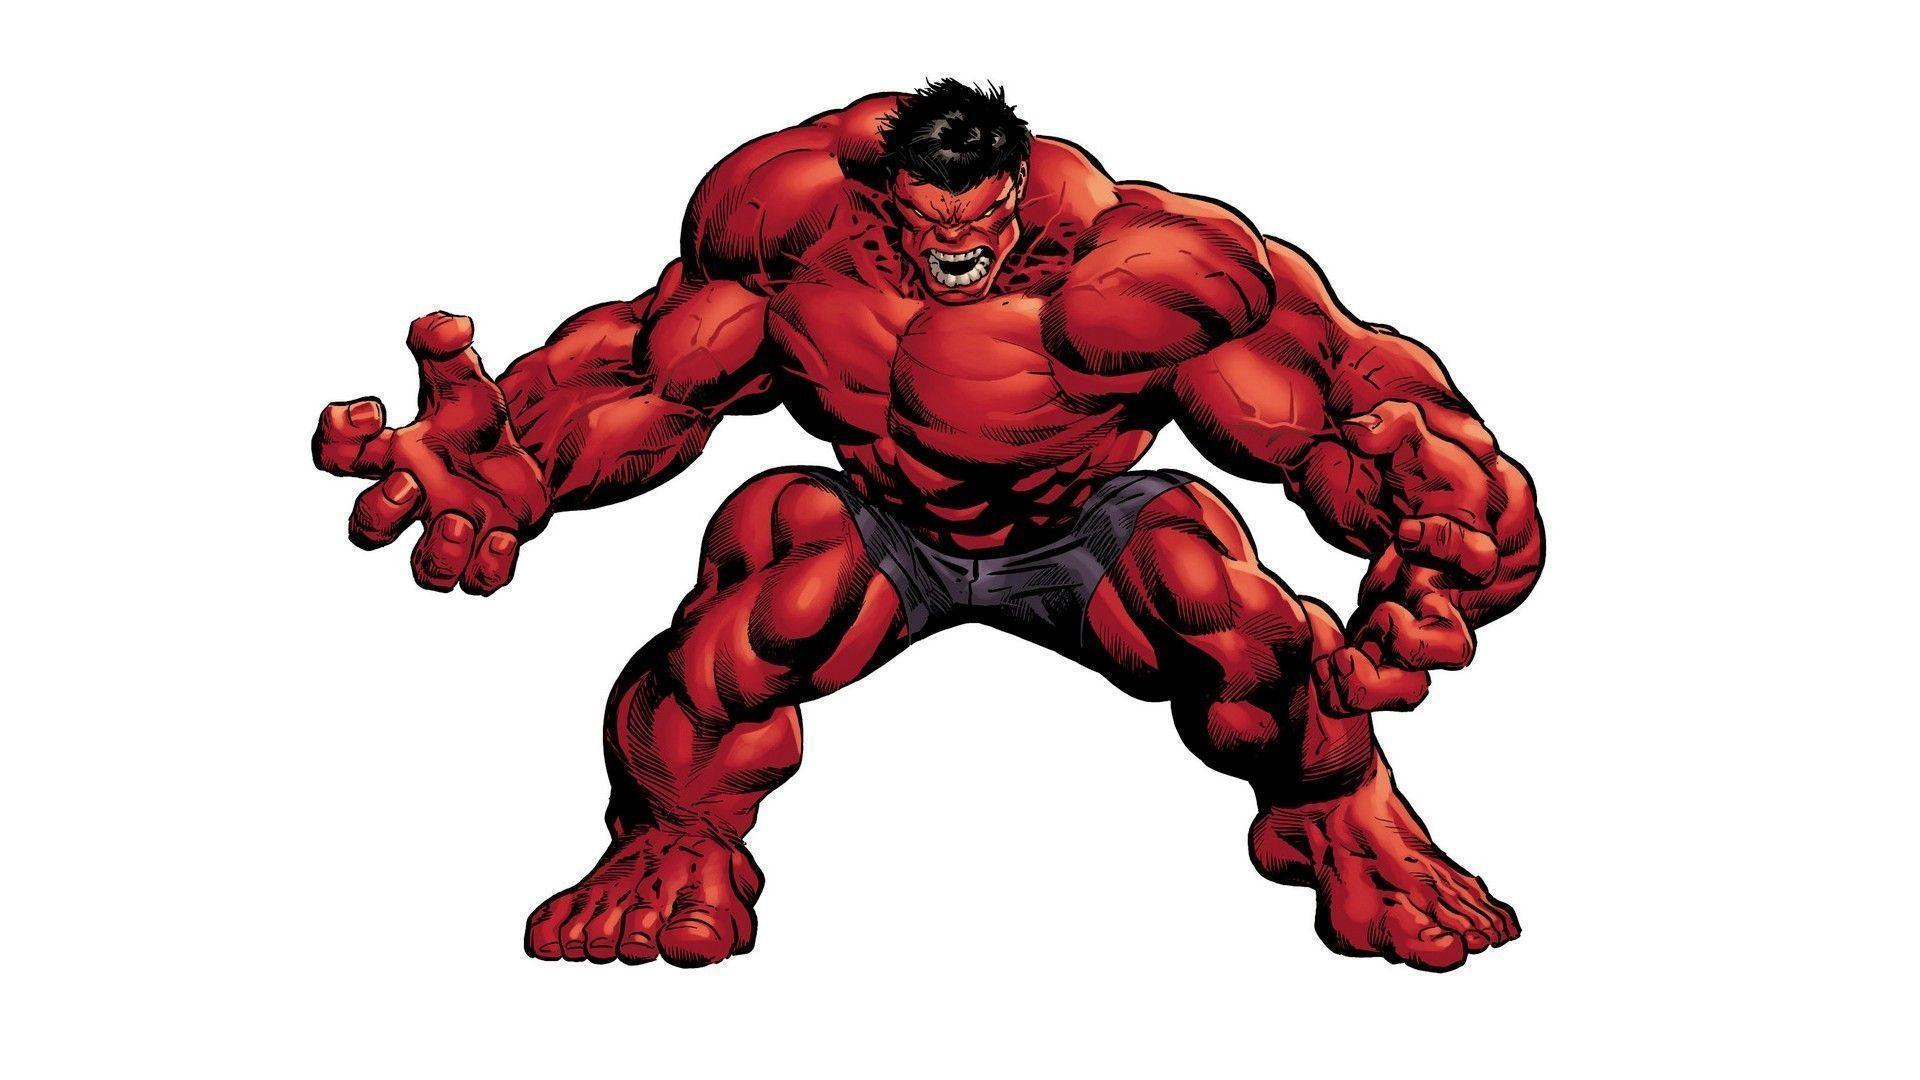 Red hulk image with white backgrounds Stock Free Image